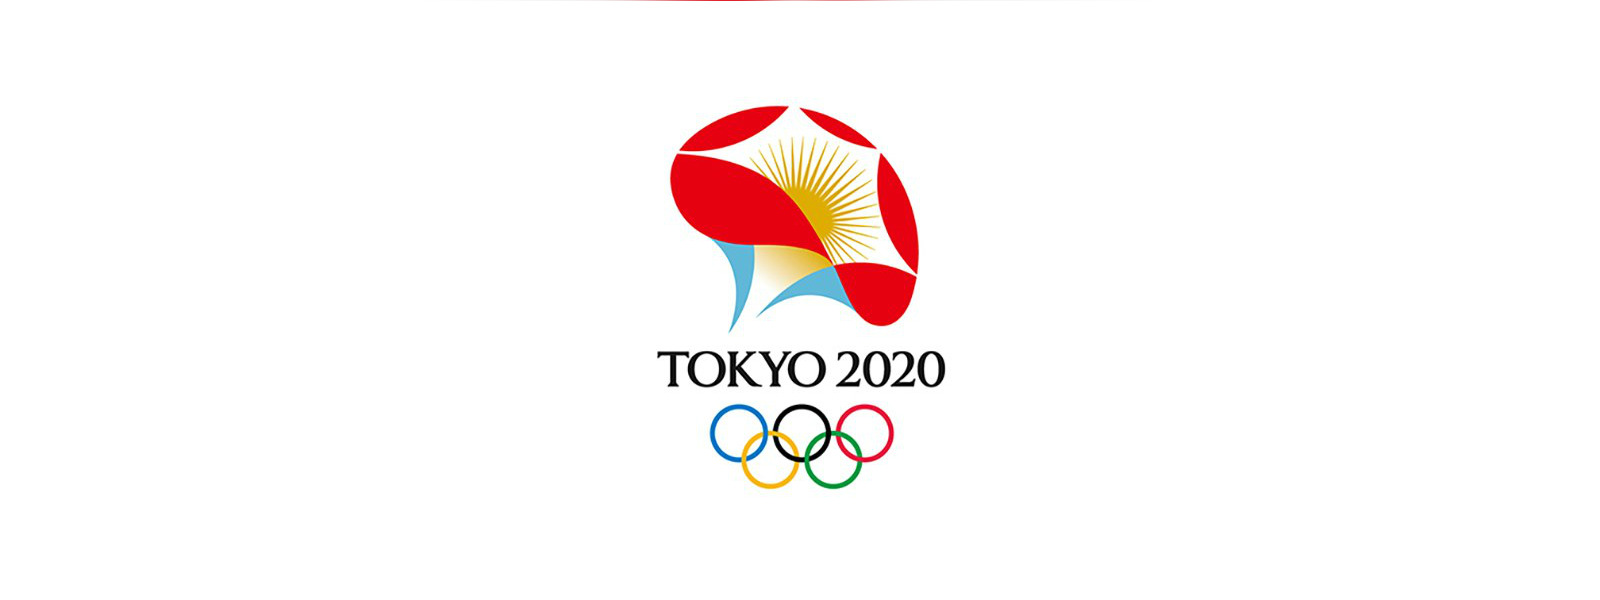 "Delivery of Tokyo Olympics ""firmly on track"", says IOC"